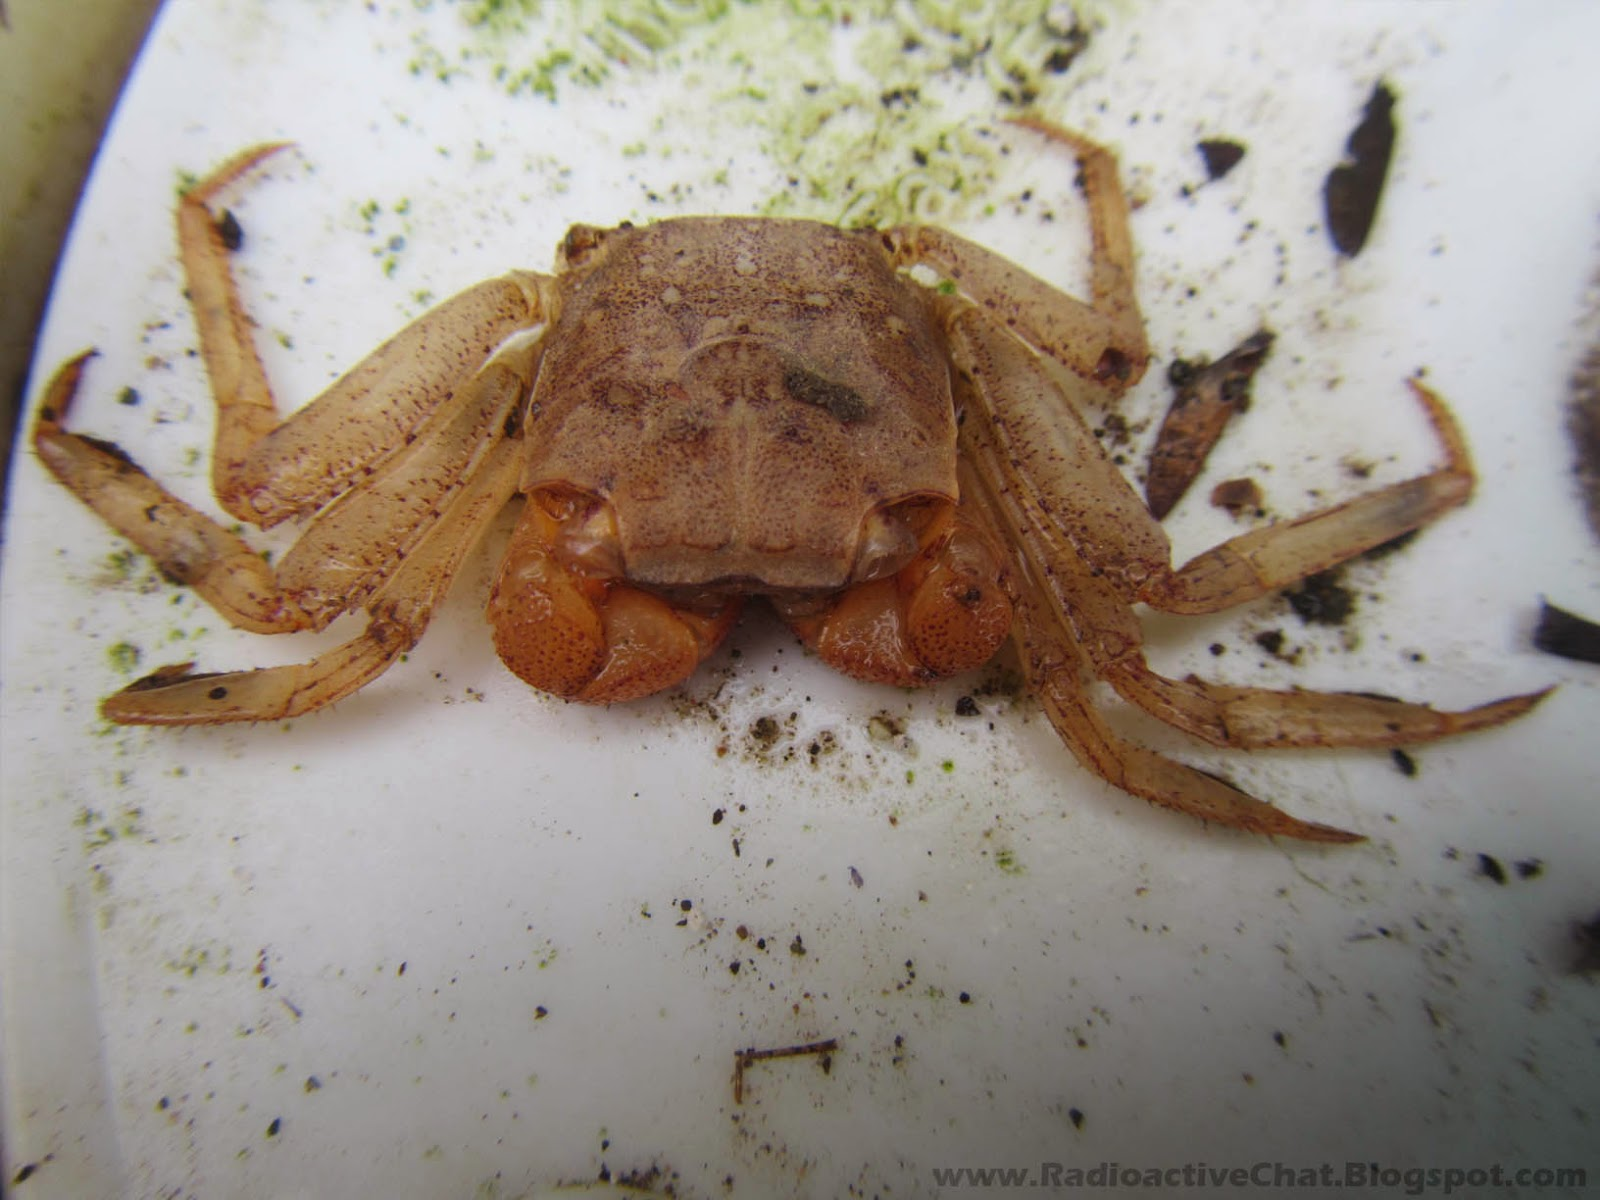 Costa Rica Pacific Coast Mass Animal Deaths Fukushima Radiation - Gecarcinus Quadratus Mangrove Crabs Photo 1